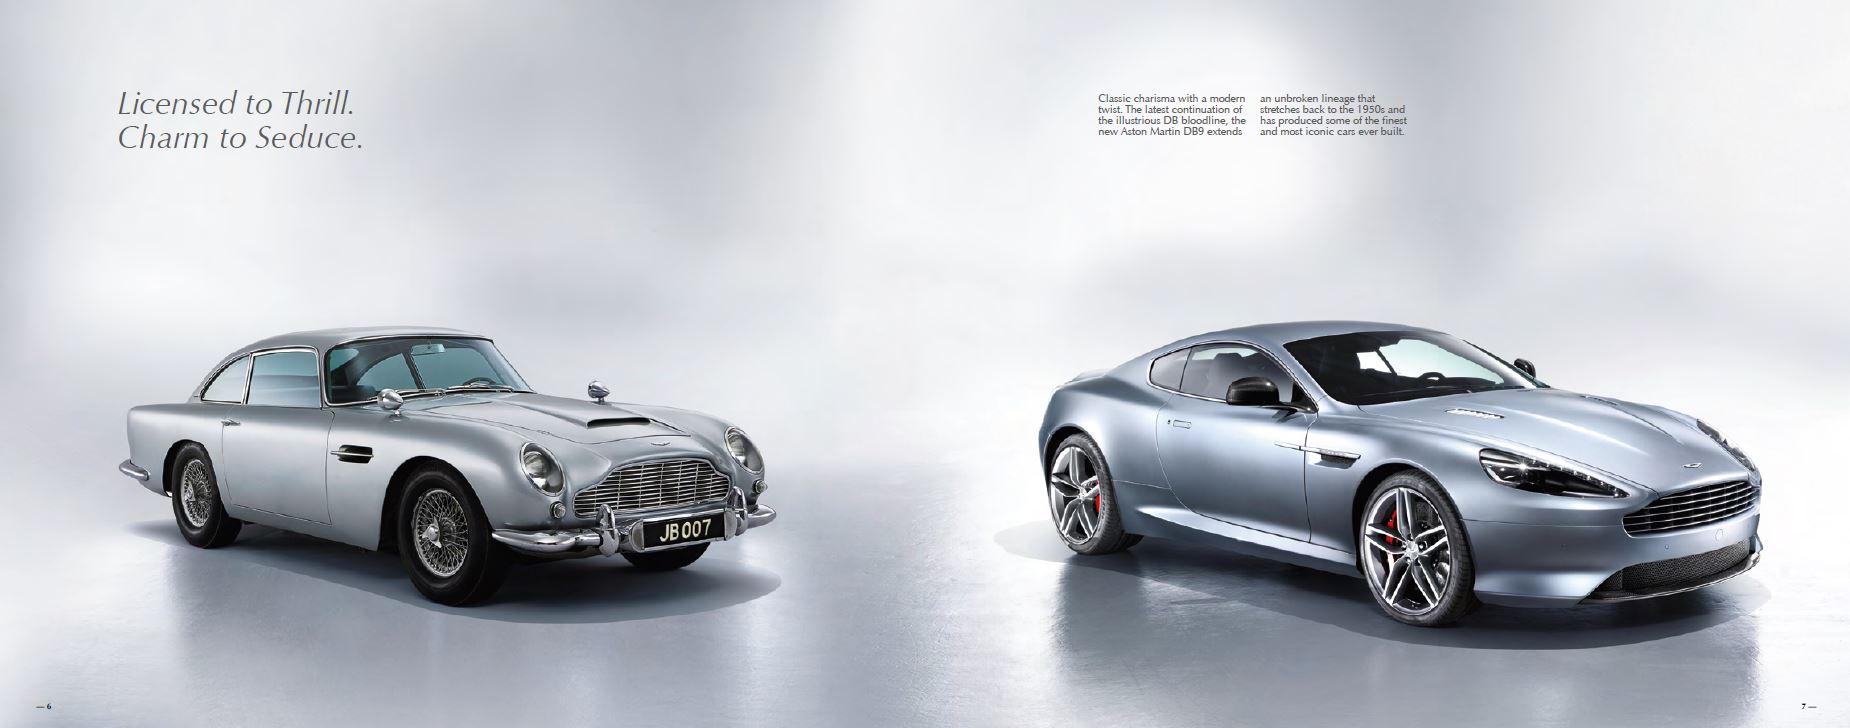 Aston Martin Db9 Overview